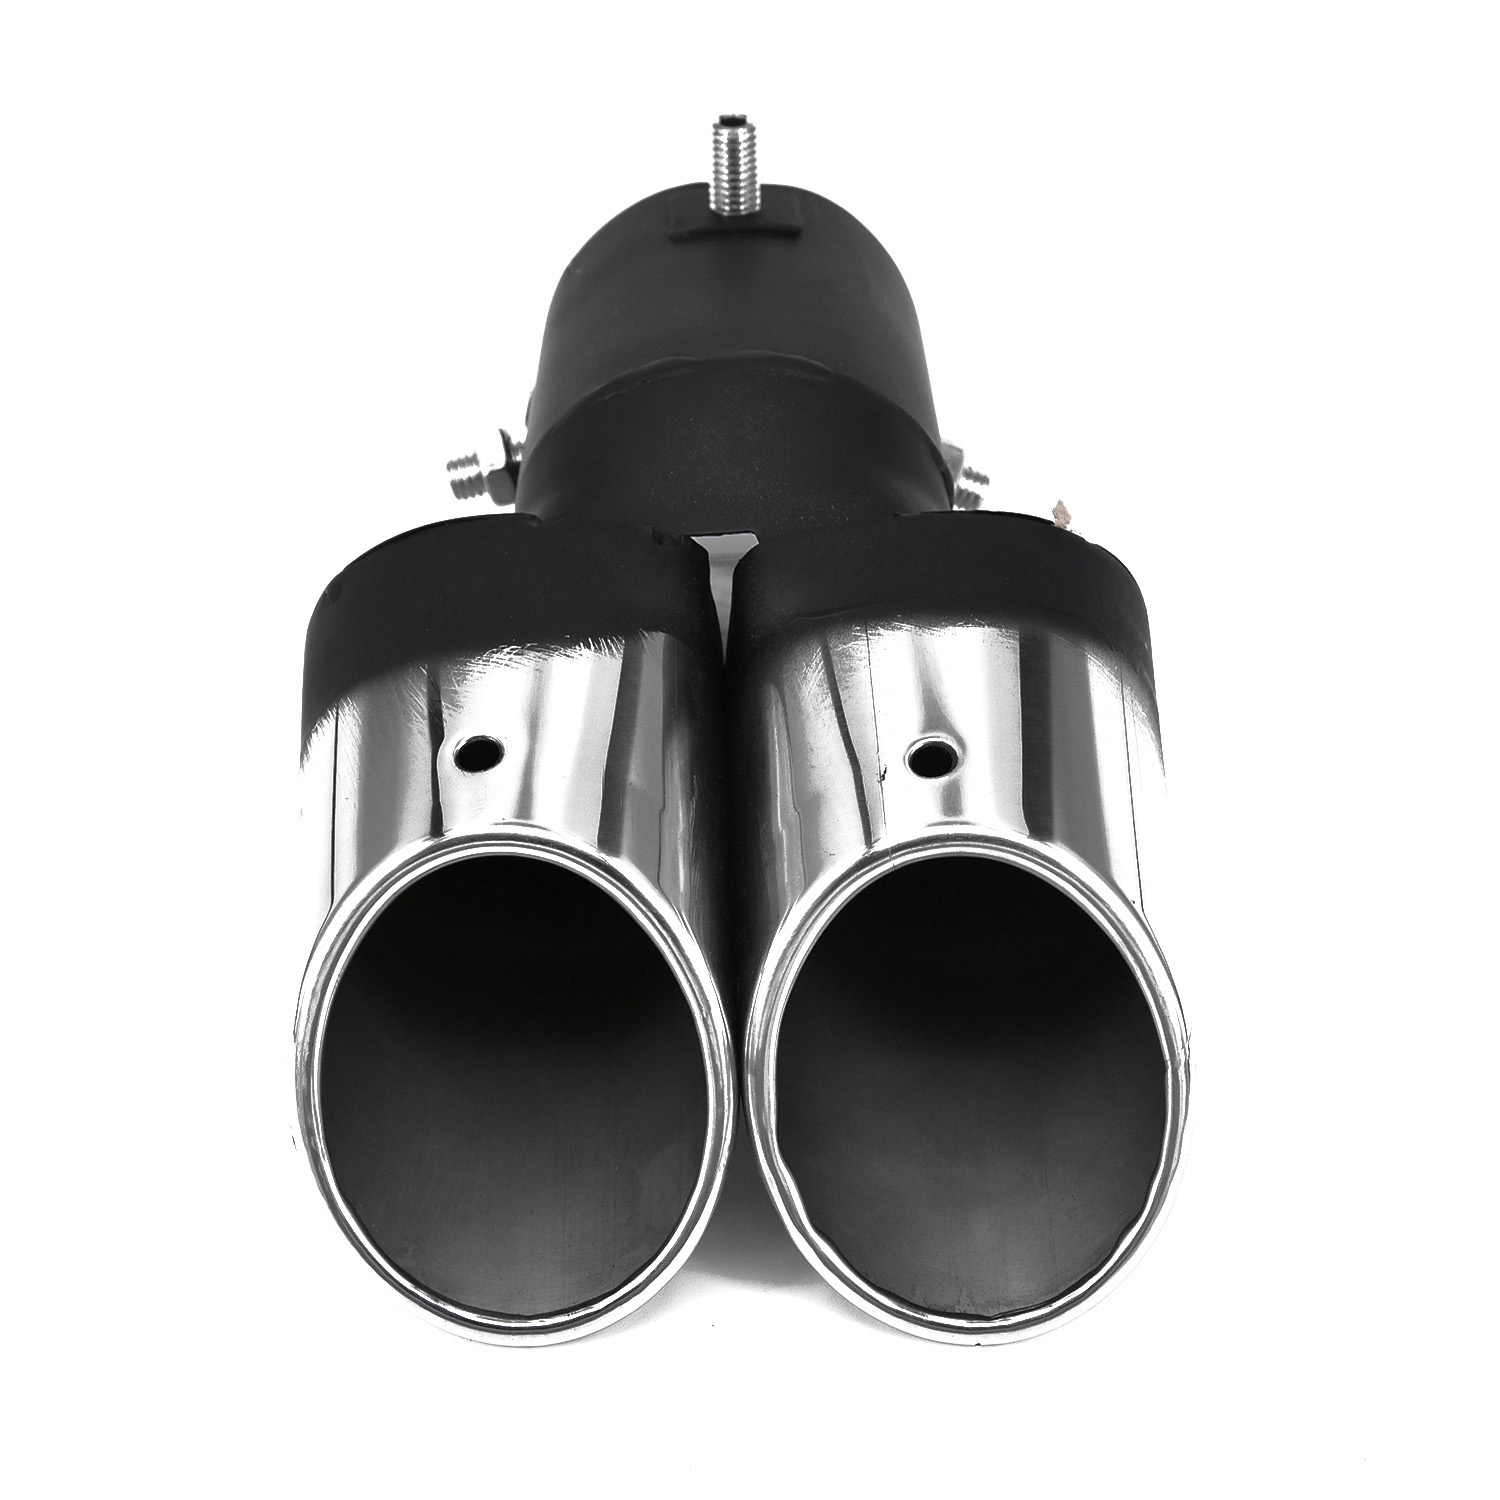 Tip Exhaust Pipe Stainless Steel Car Adjustable Glossy Universal Motorcycle Chrome Curve Dual outlet|Exhaust Manifolds| |  - title=